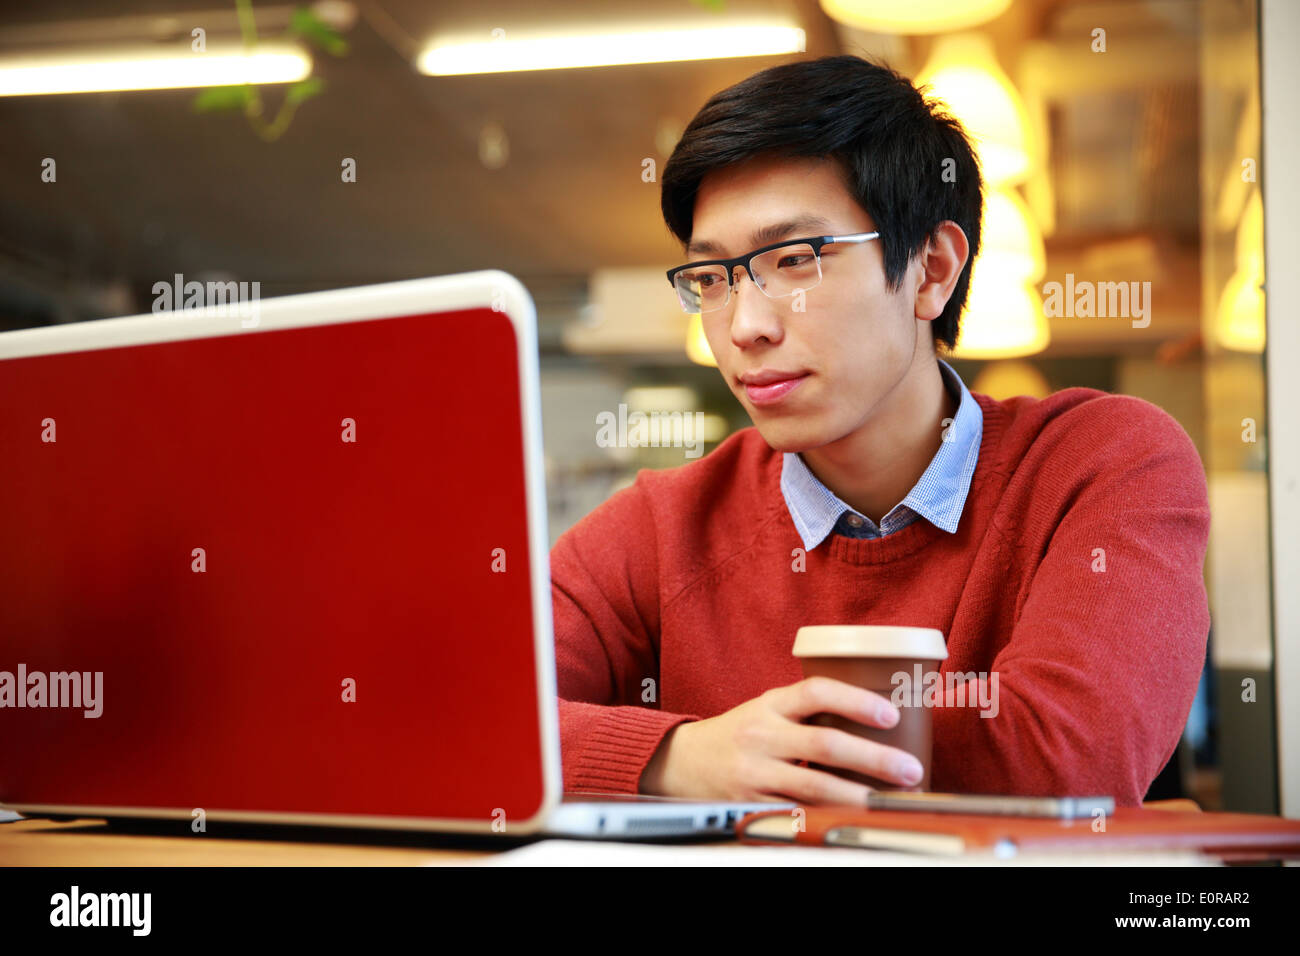 Young asian man in glasses working on laptop and holding cup of coffee - Stock Image